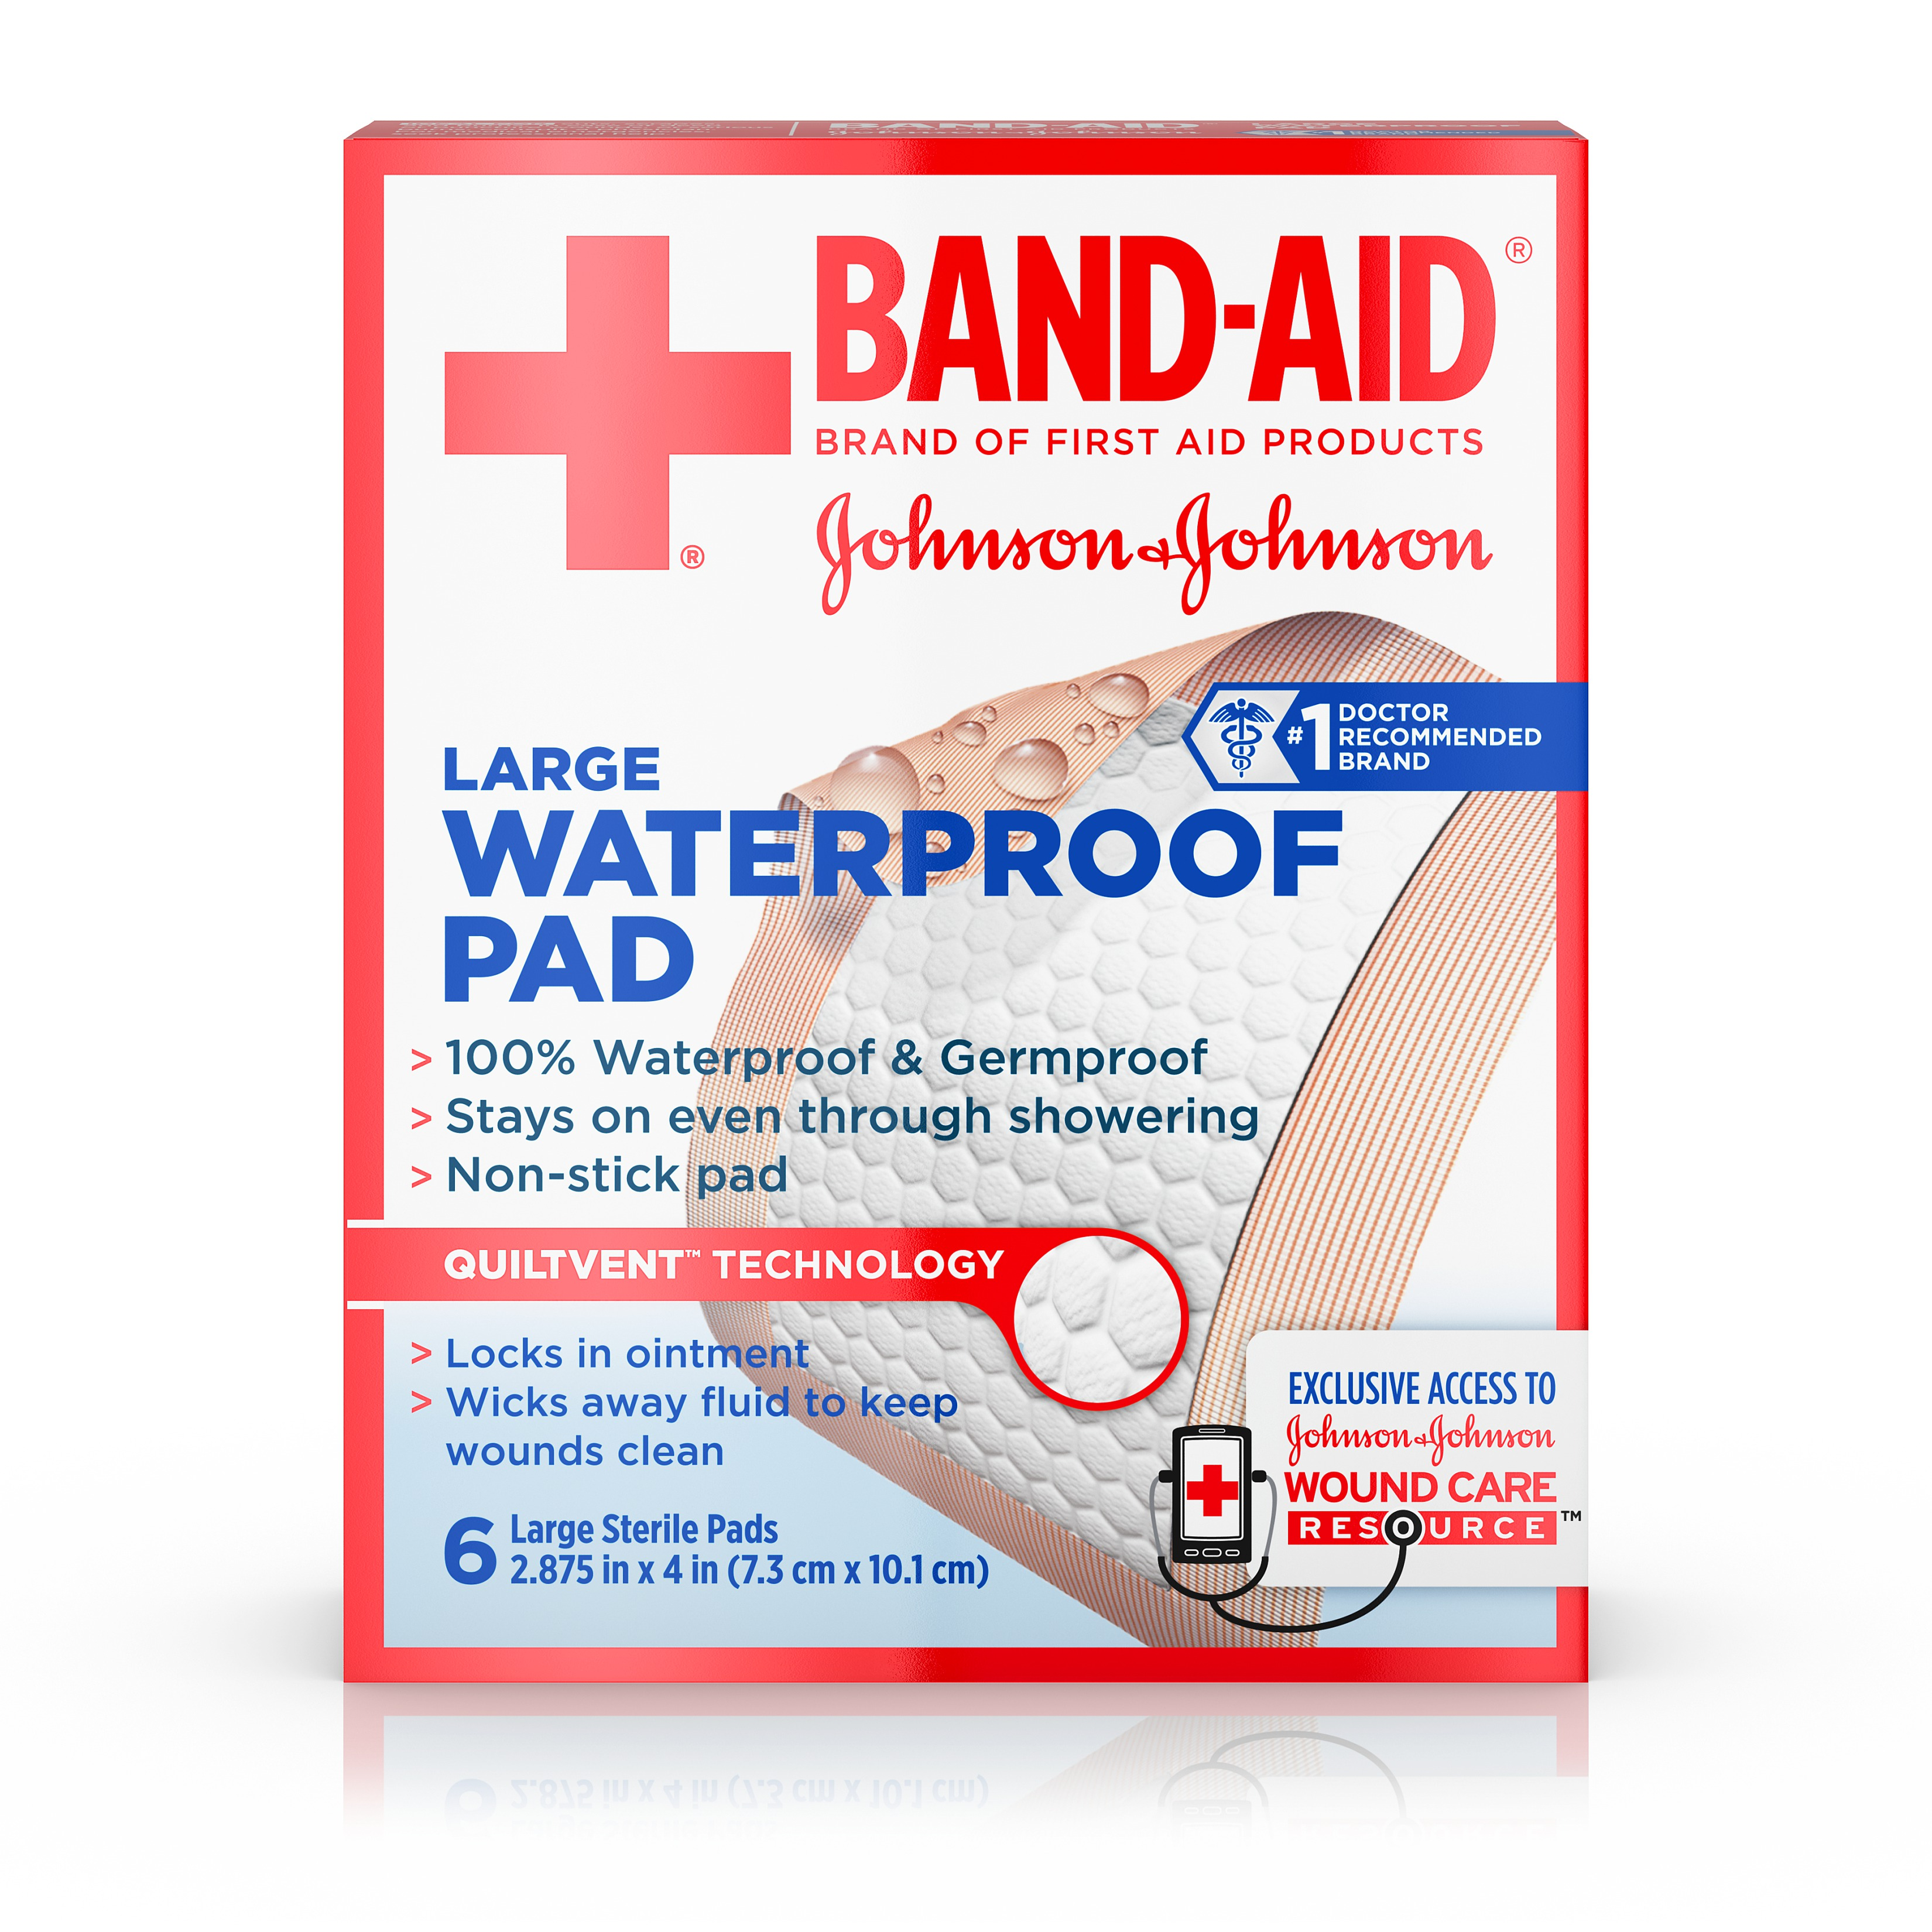 Band-Aid Brand of First Aid Products Waterproof Pads, for Minor Cut and Scrapes, 2.9 by 4 Inches, 6 Count